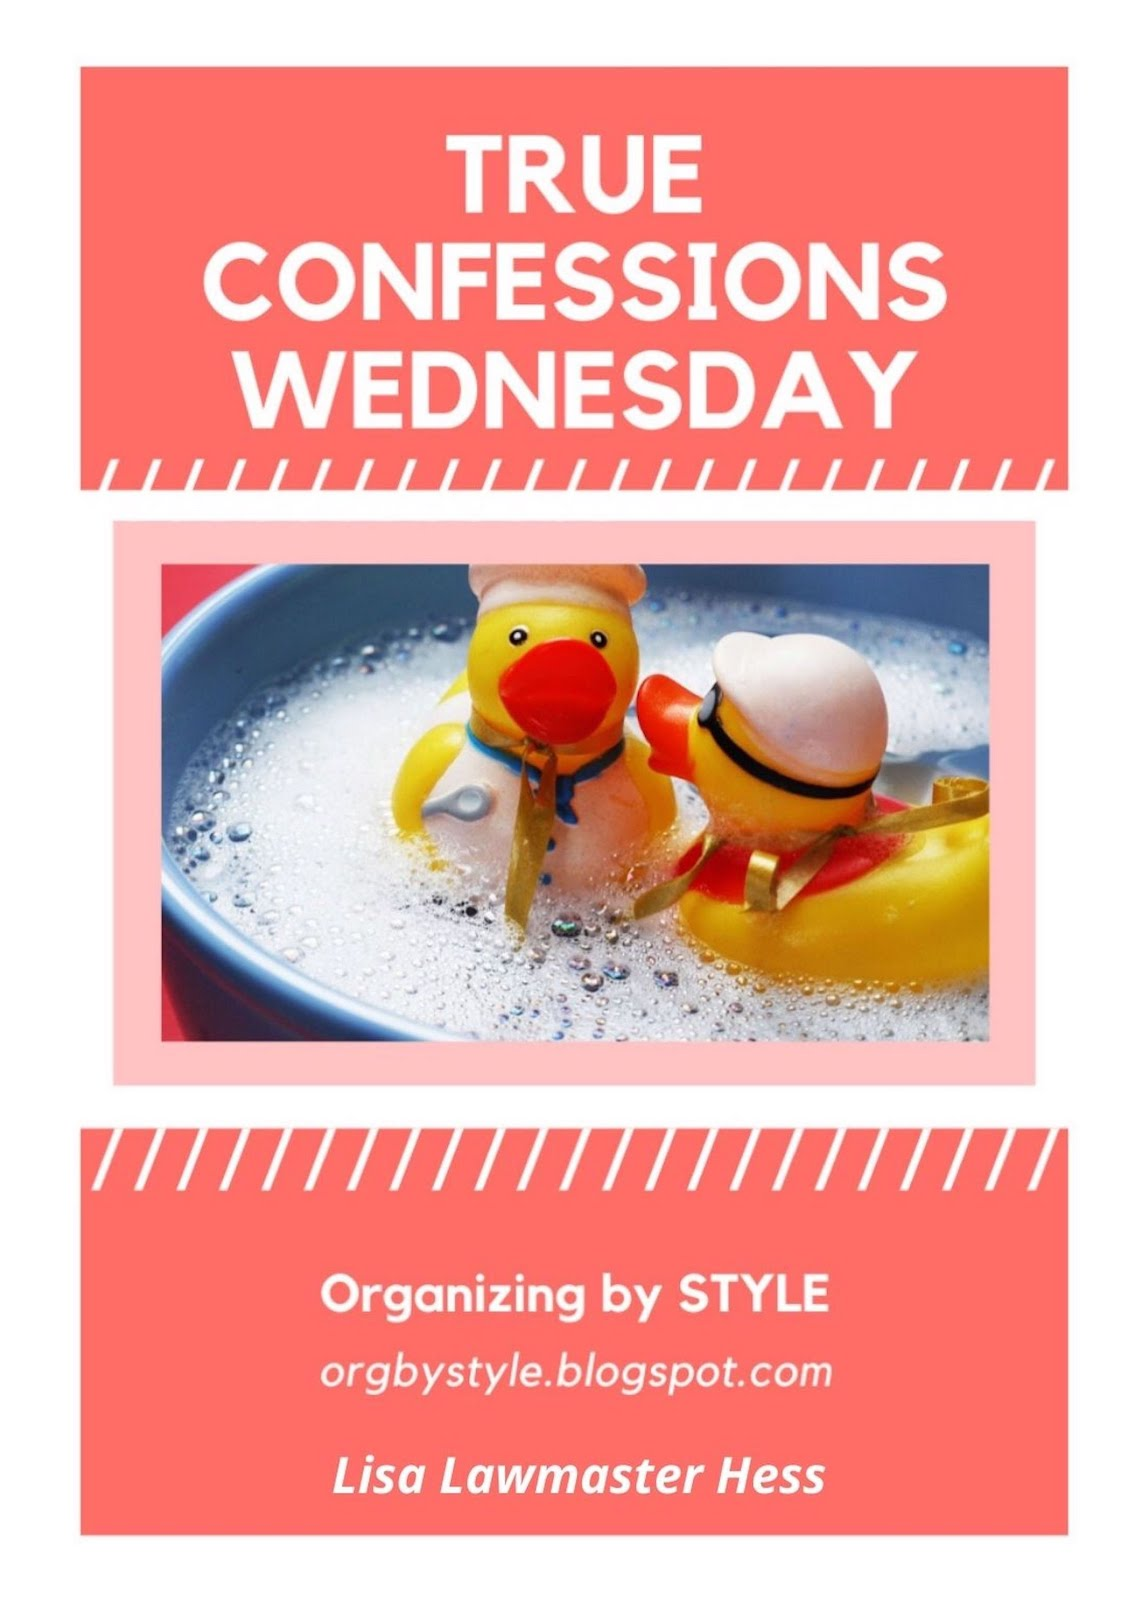 True Confessions Wednesday